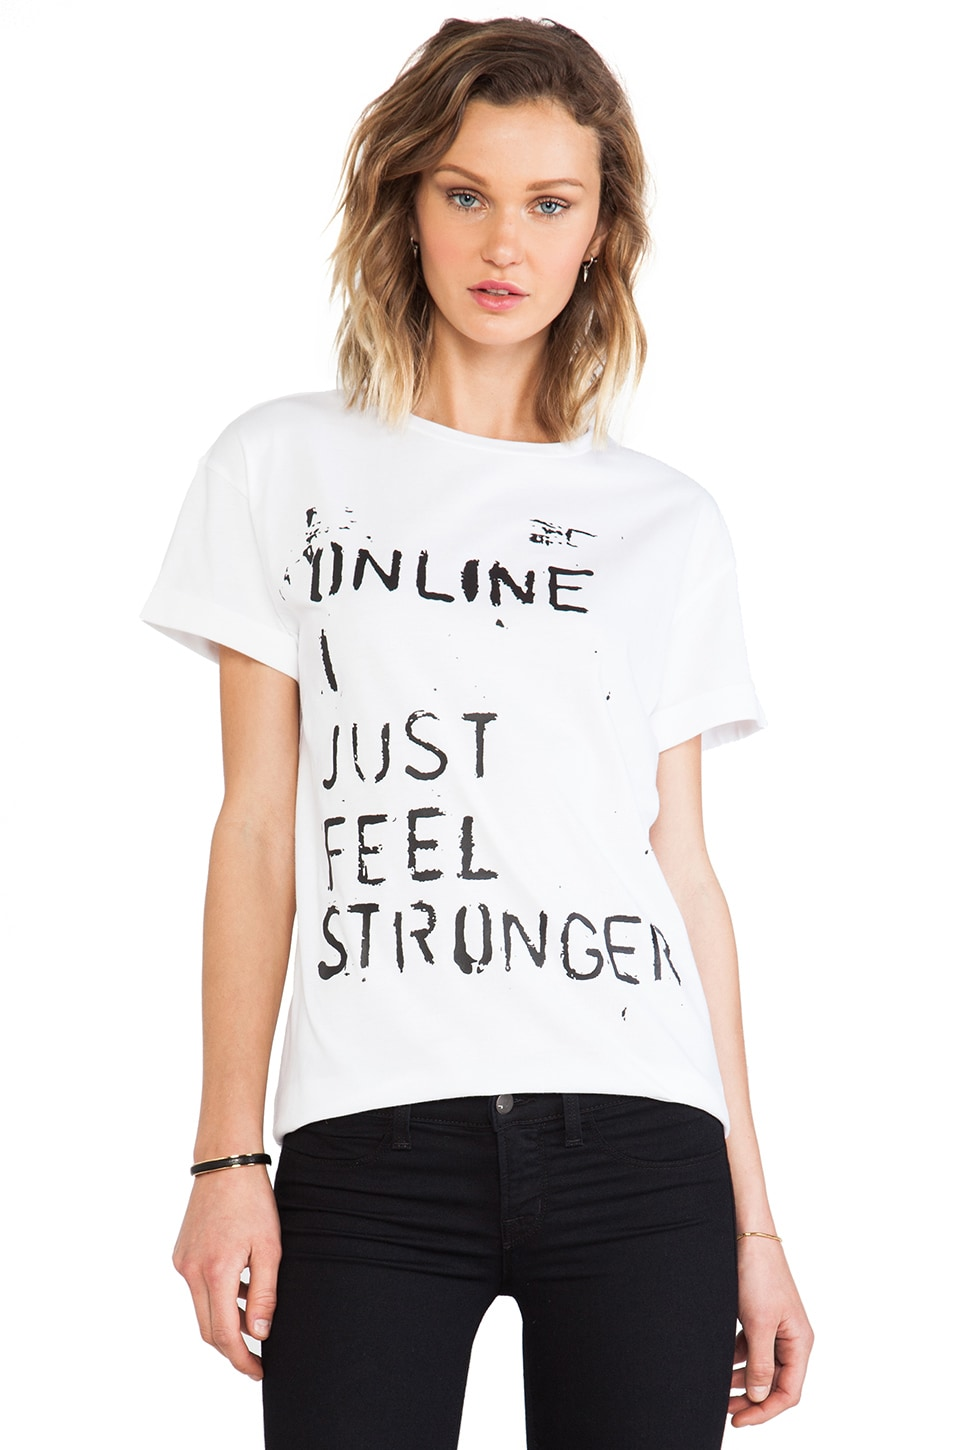 etre cecile x Richie Culver Online I Just Oversize T-Shirt in White & Black